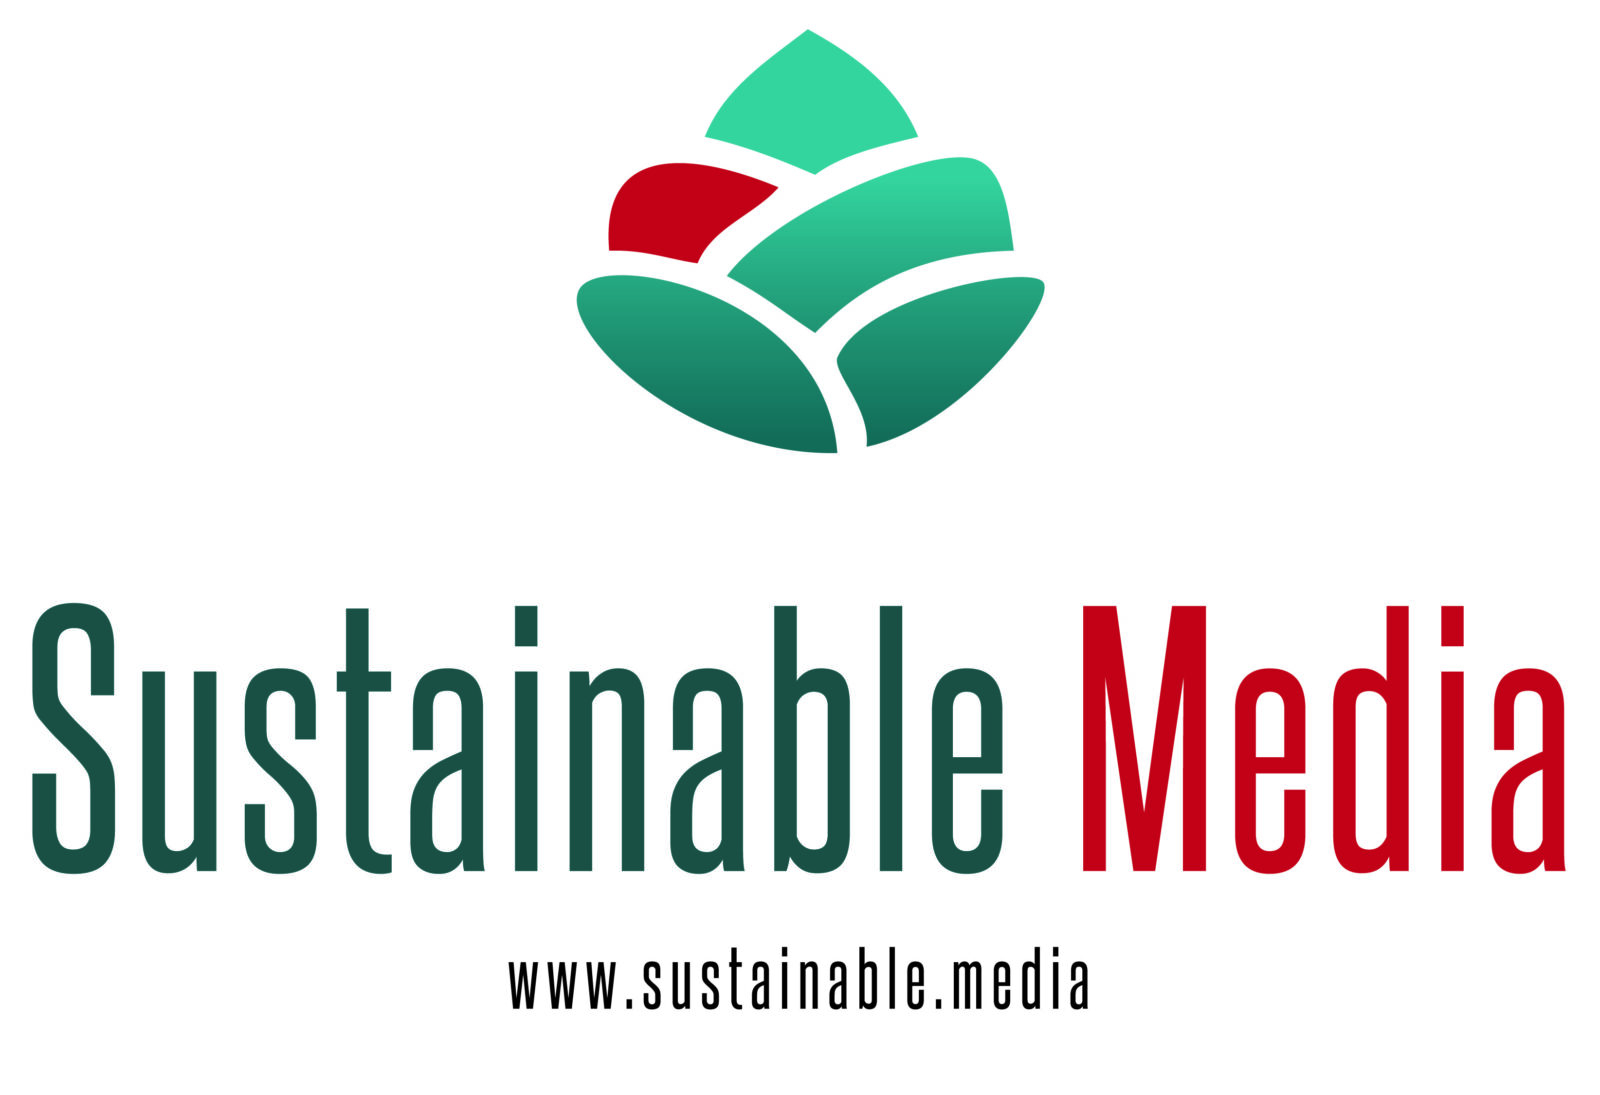 WFPB.ORG Alliance | Sustainable Media